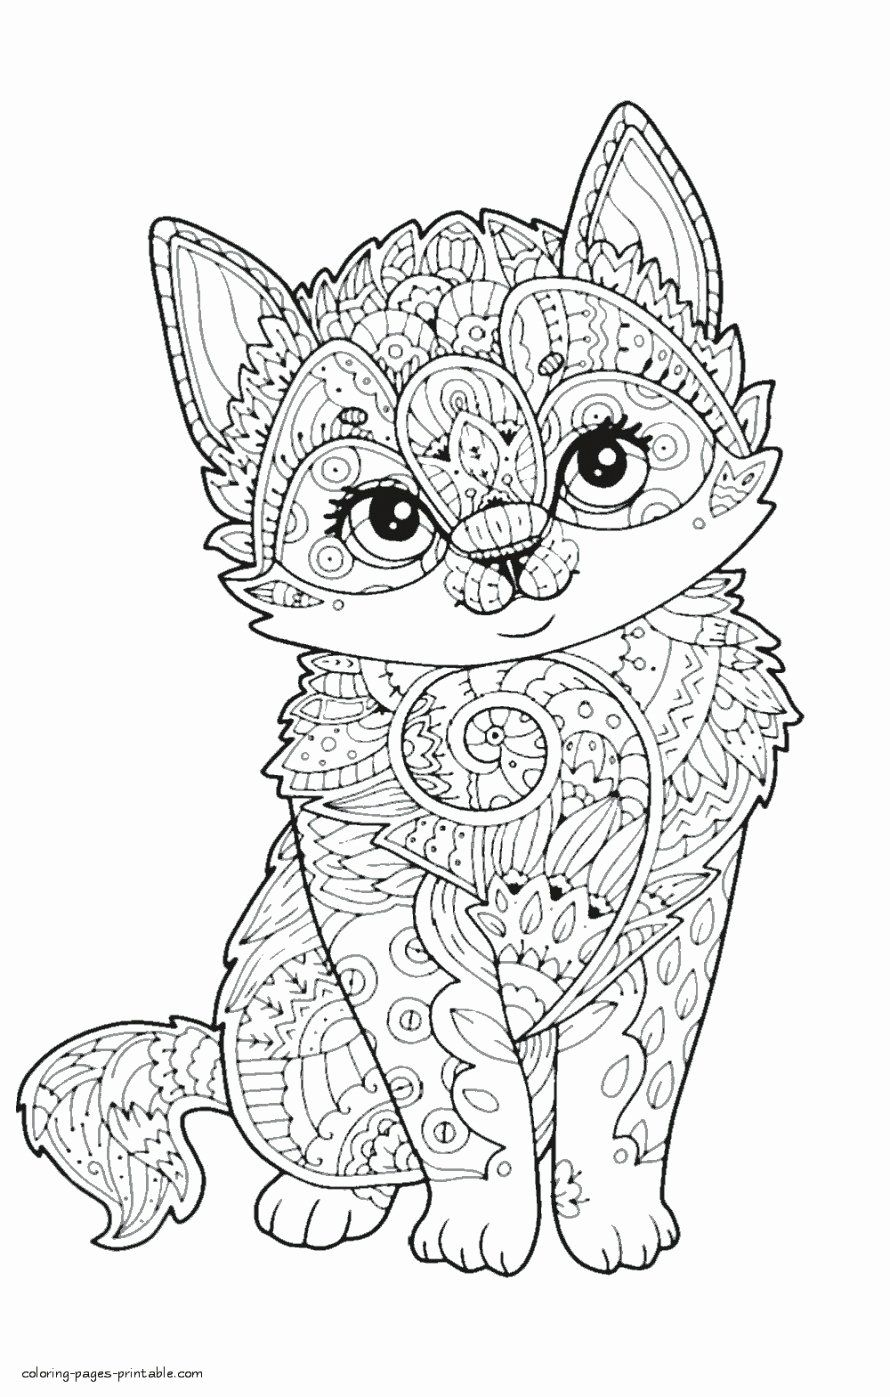 Coloring Book Zoo Animals Inspirational Coloring Books Animal Coloring Pages For Adults Best A Zoo Animal Coloring Pages Kittens Coloring Animal Coloring Books